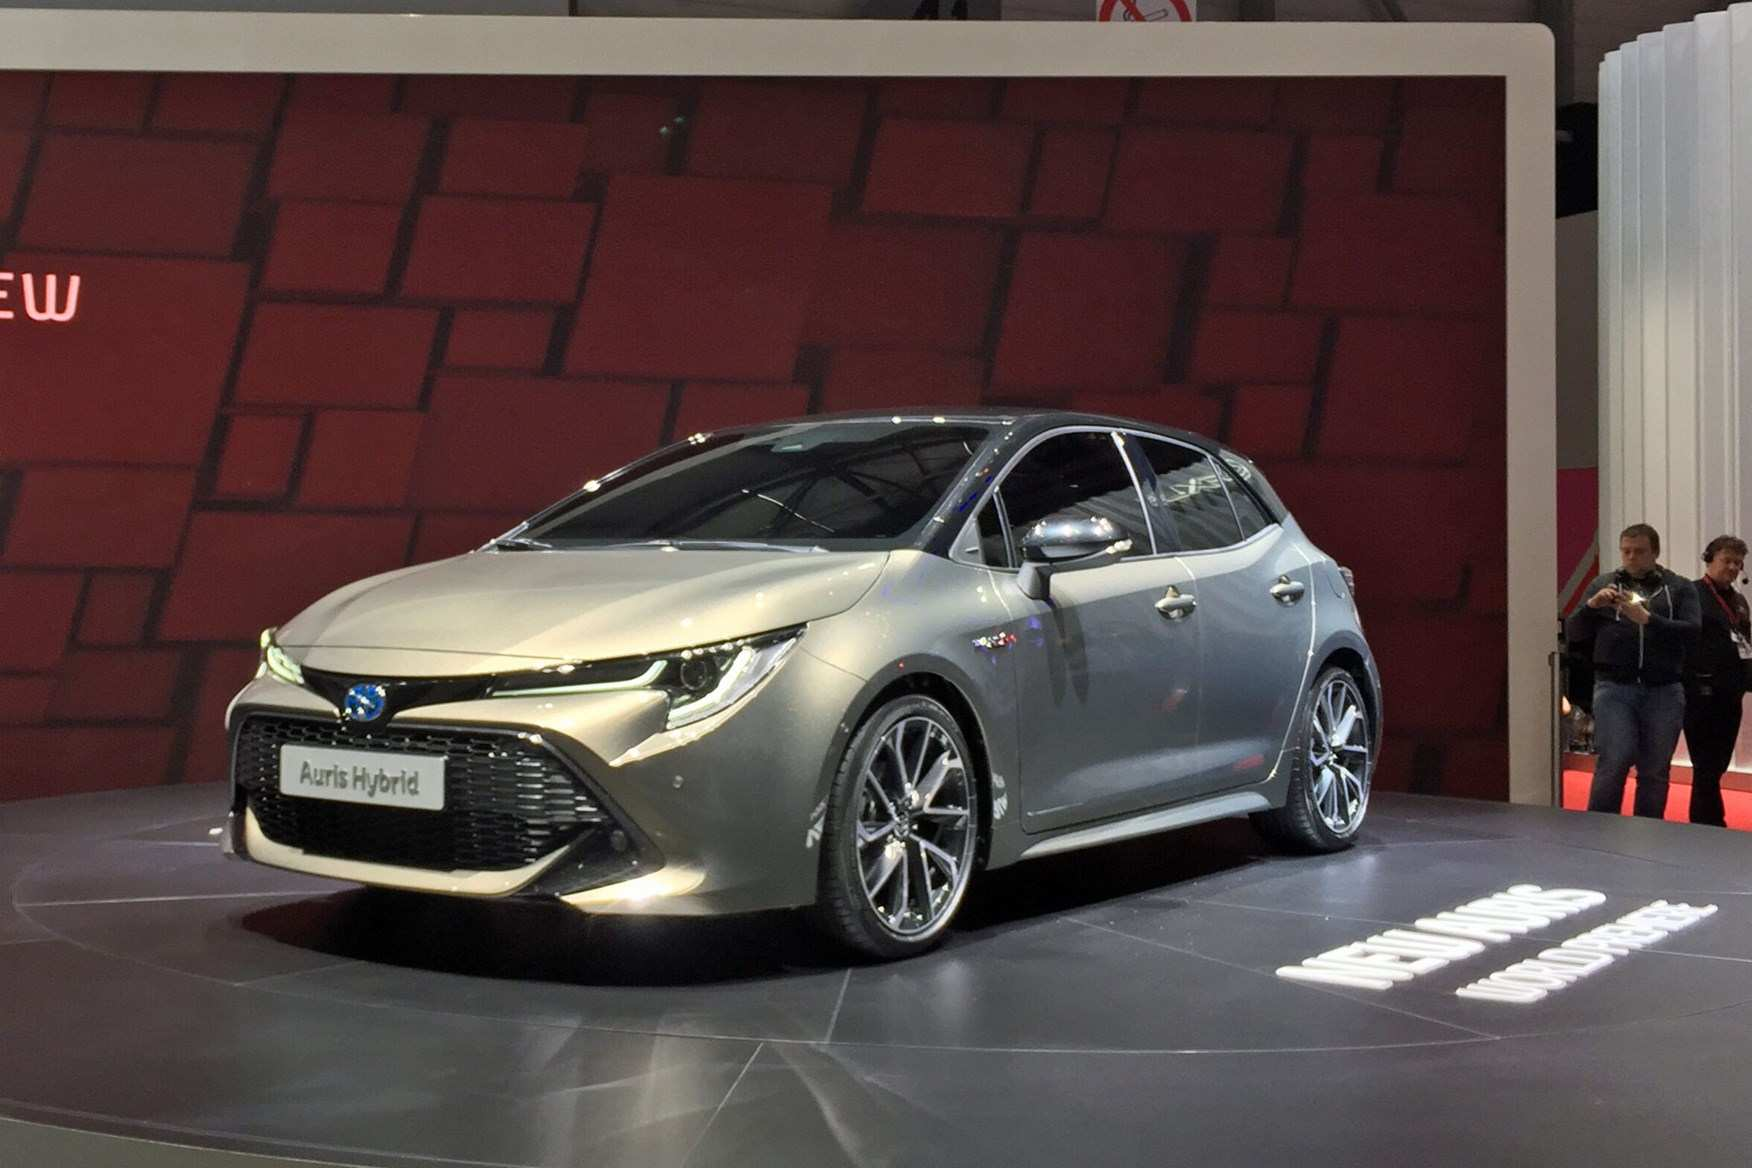 73 The Best Toyota Auris 2019 Release Date Price